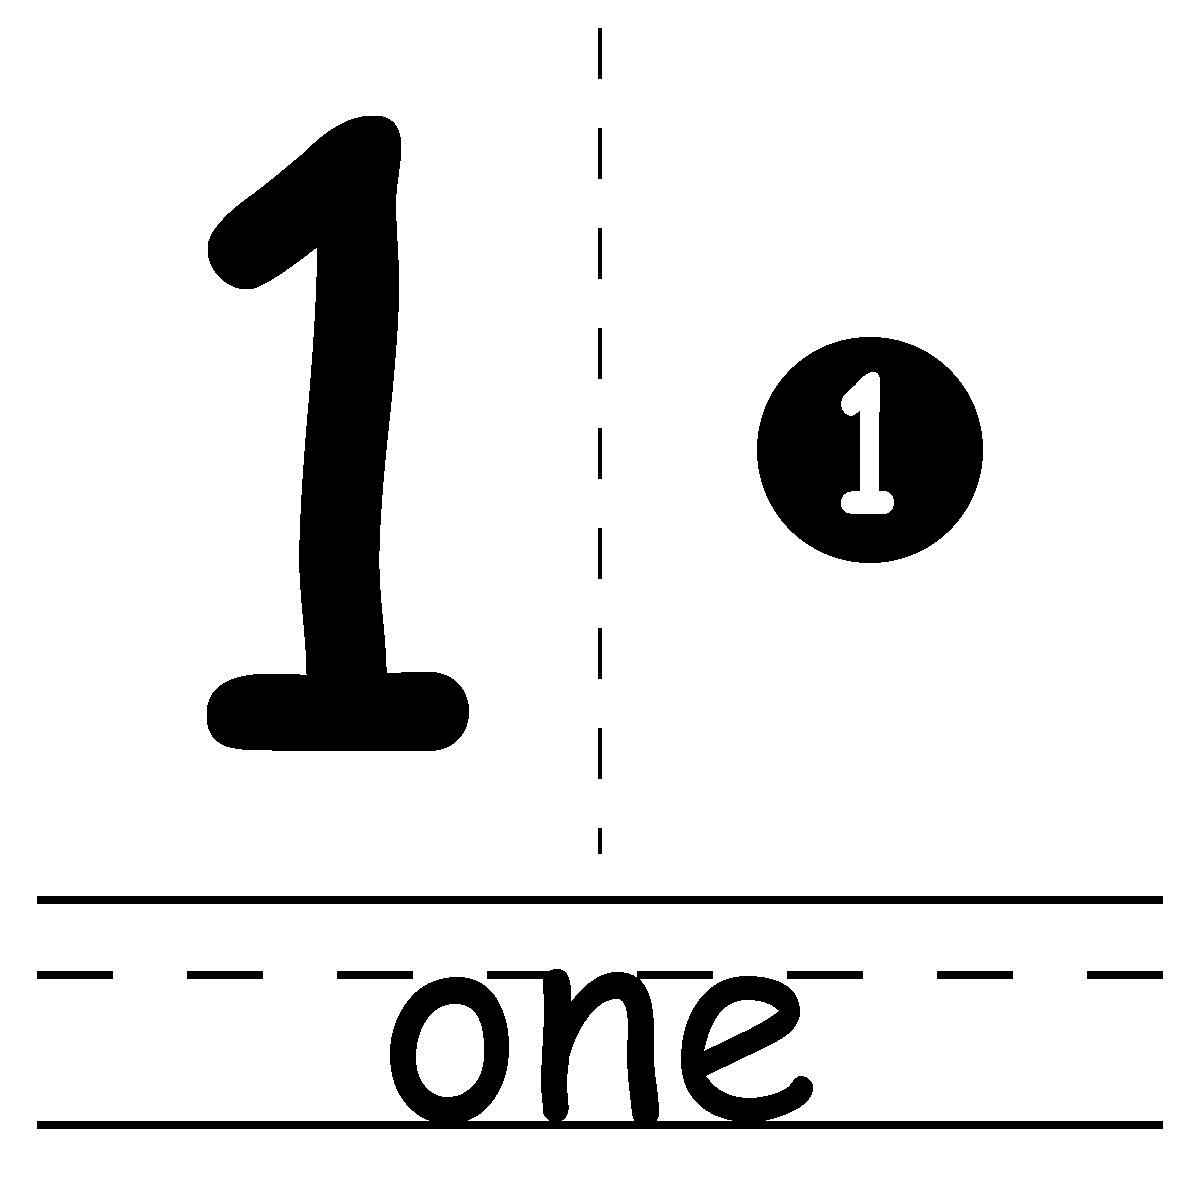 number-1-picture-for-kids